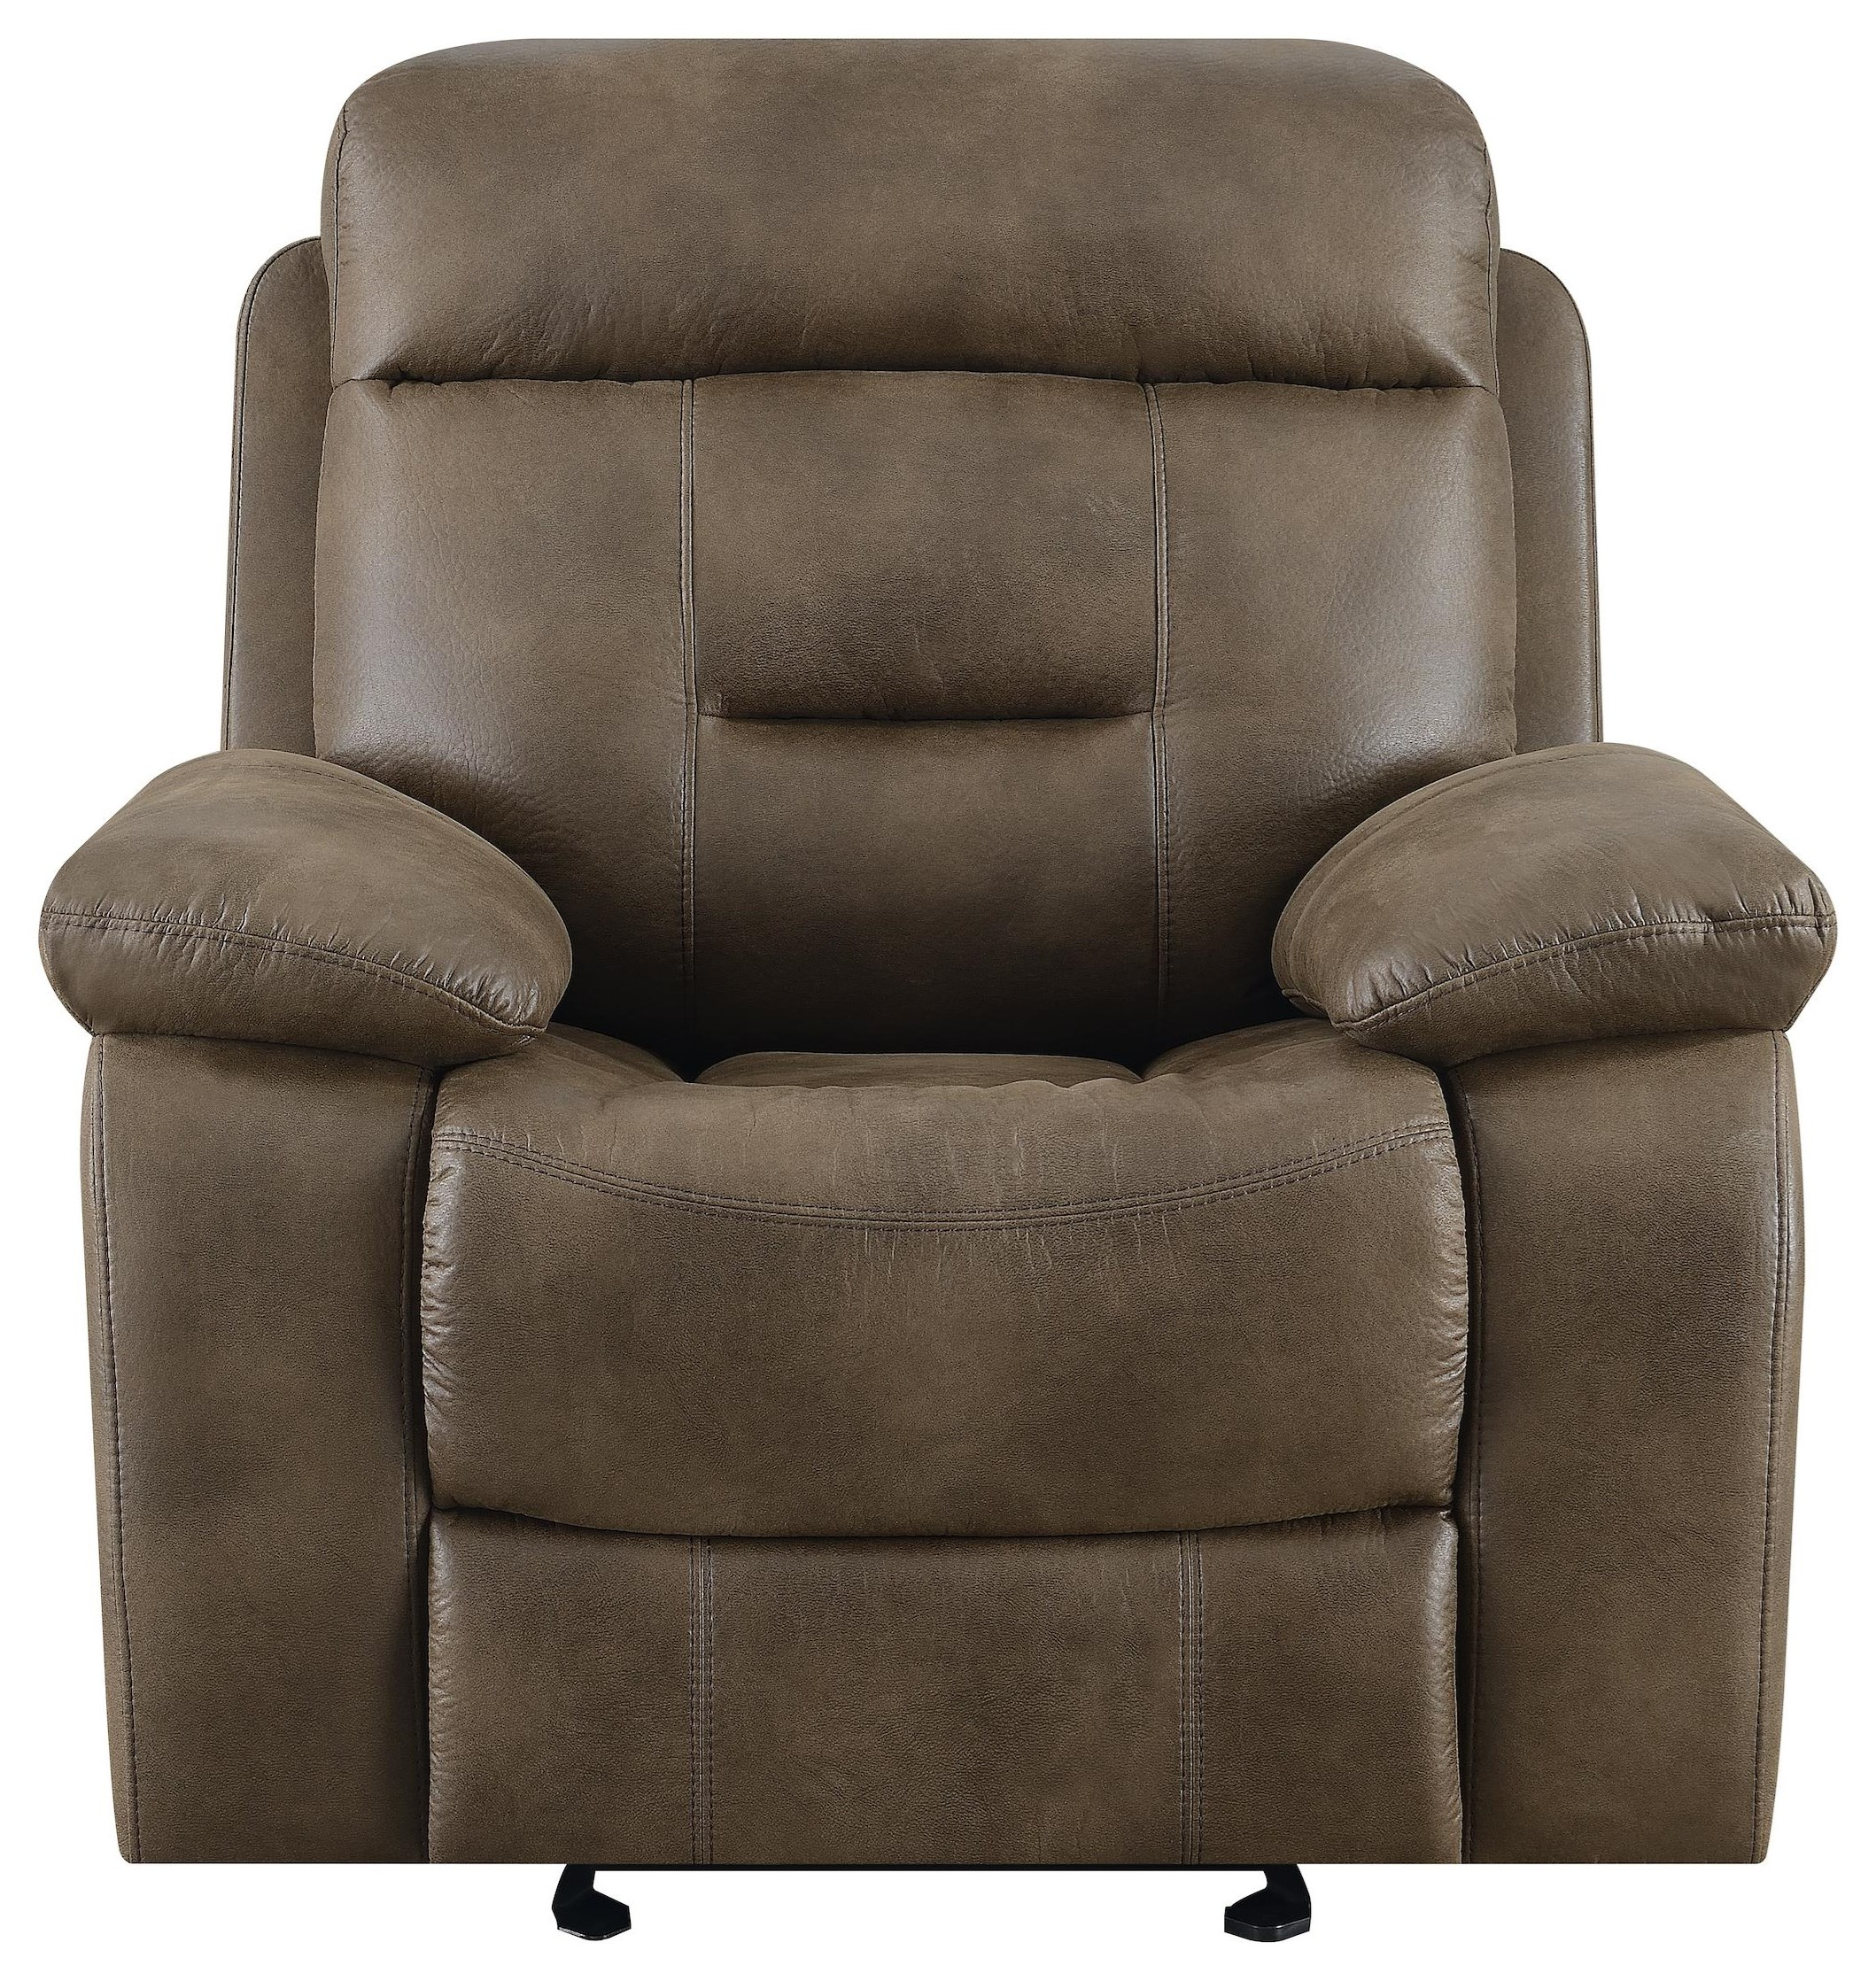 Cano Reclining Chair by Klaussner International at Beck's Furniture